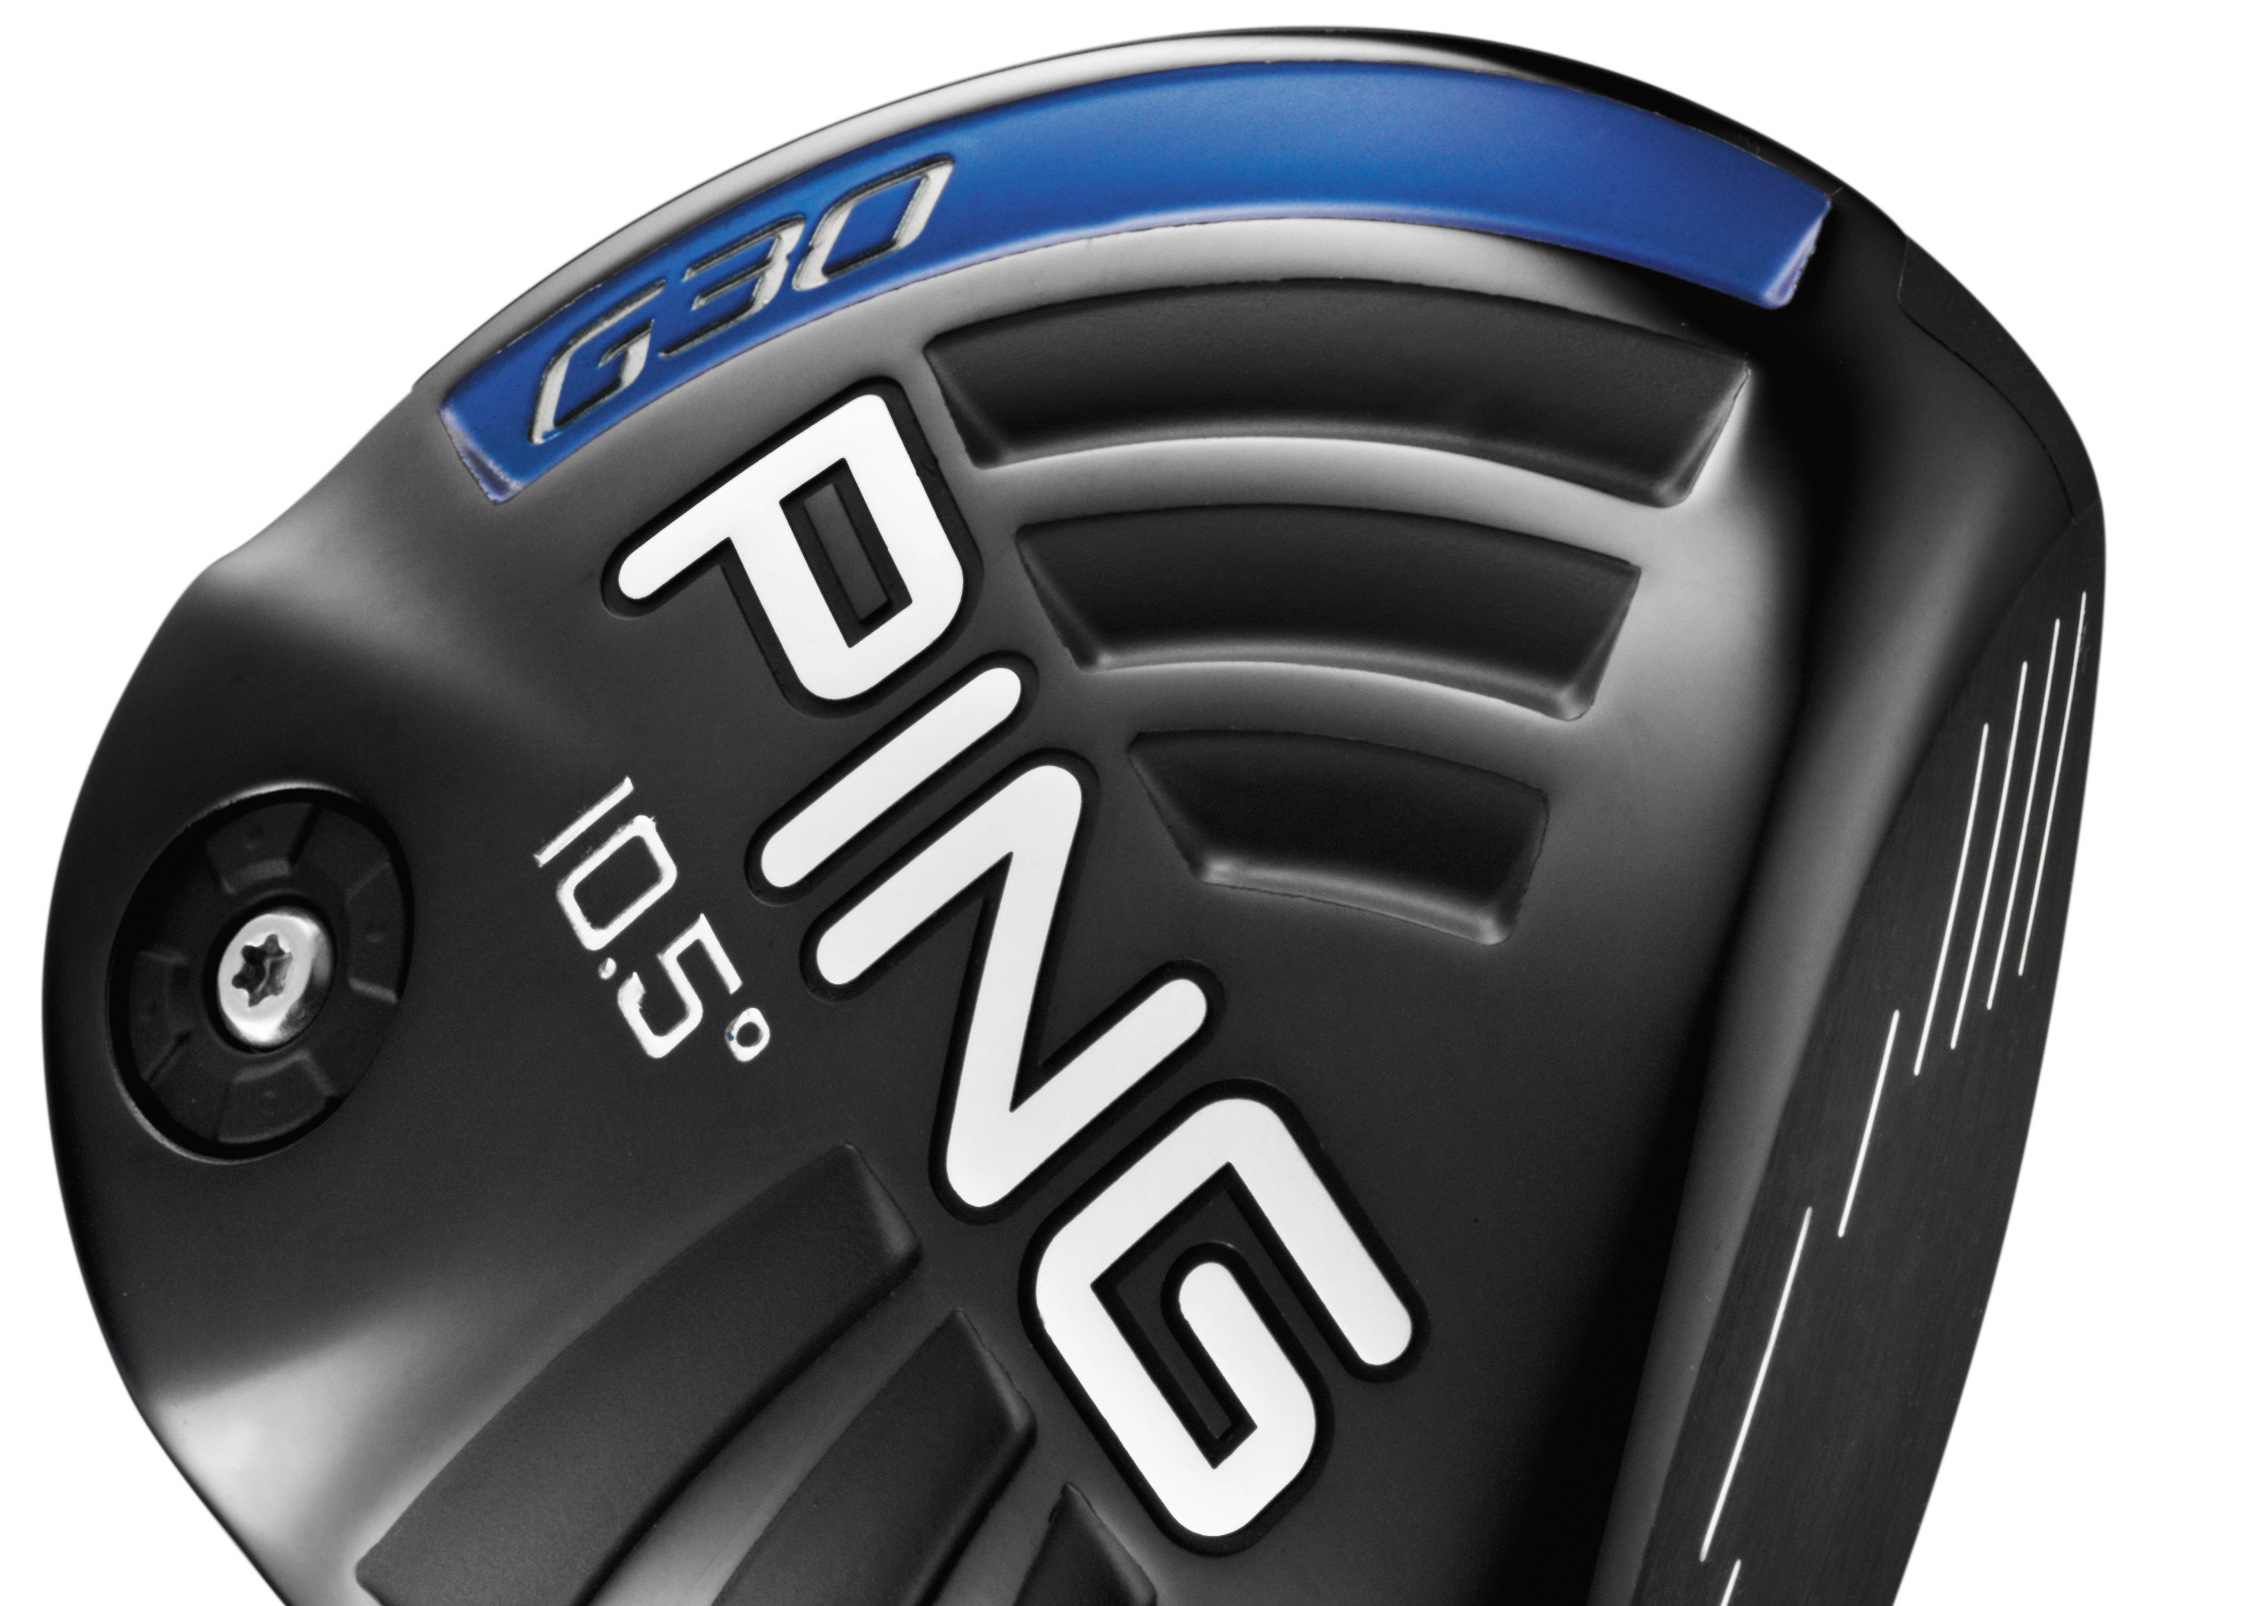 PING G30 series launched